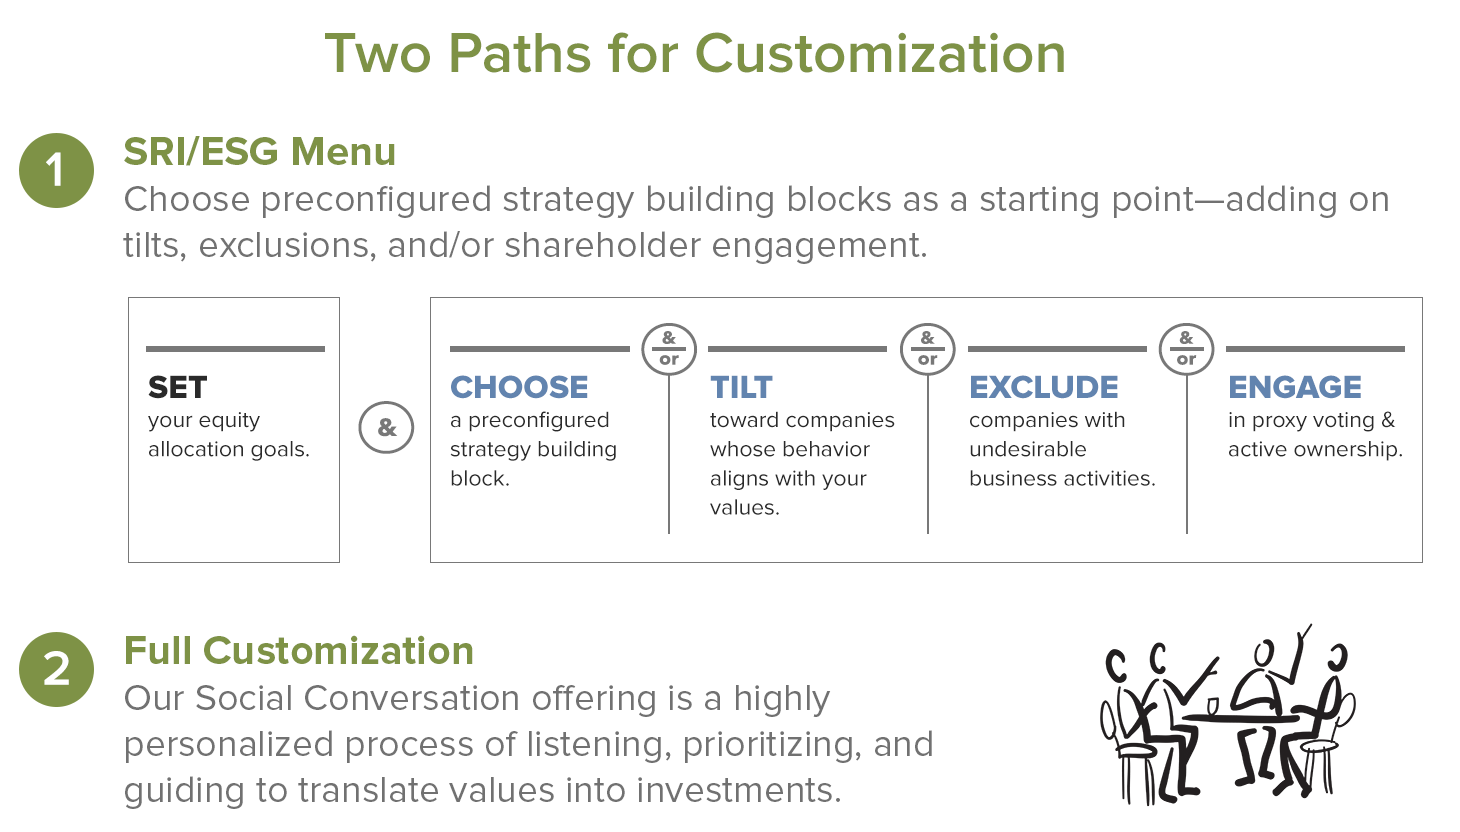 Two Paths for Customization. SRI/ESG Menu: Choose preconfigured strategy building blocks as a starting point—adding on tilts, exclusions, and/or shareholder engagement. Full Customization: Our Social Conversation offering is a highly personalized process of listening, prioritizing, and guiding to translate values into investments.